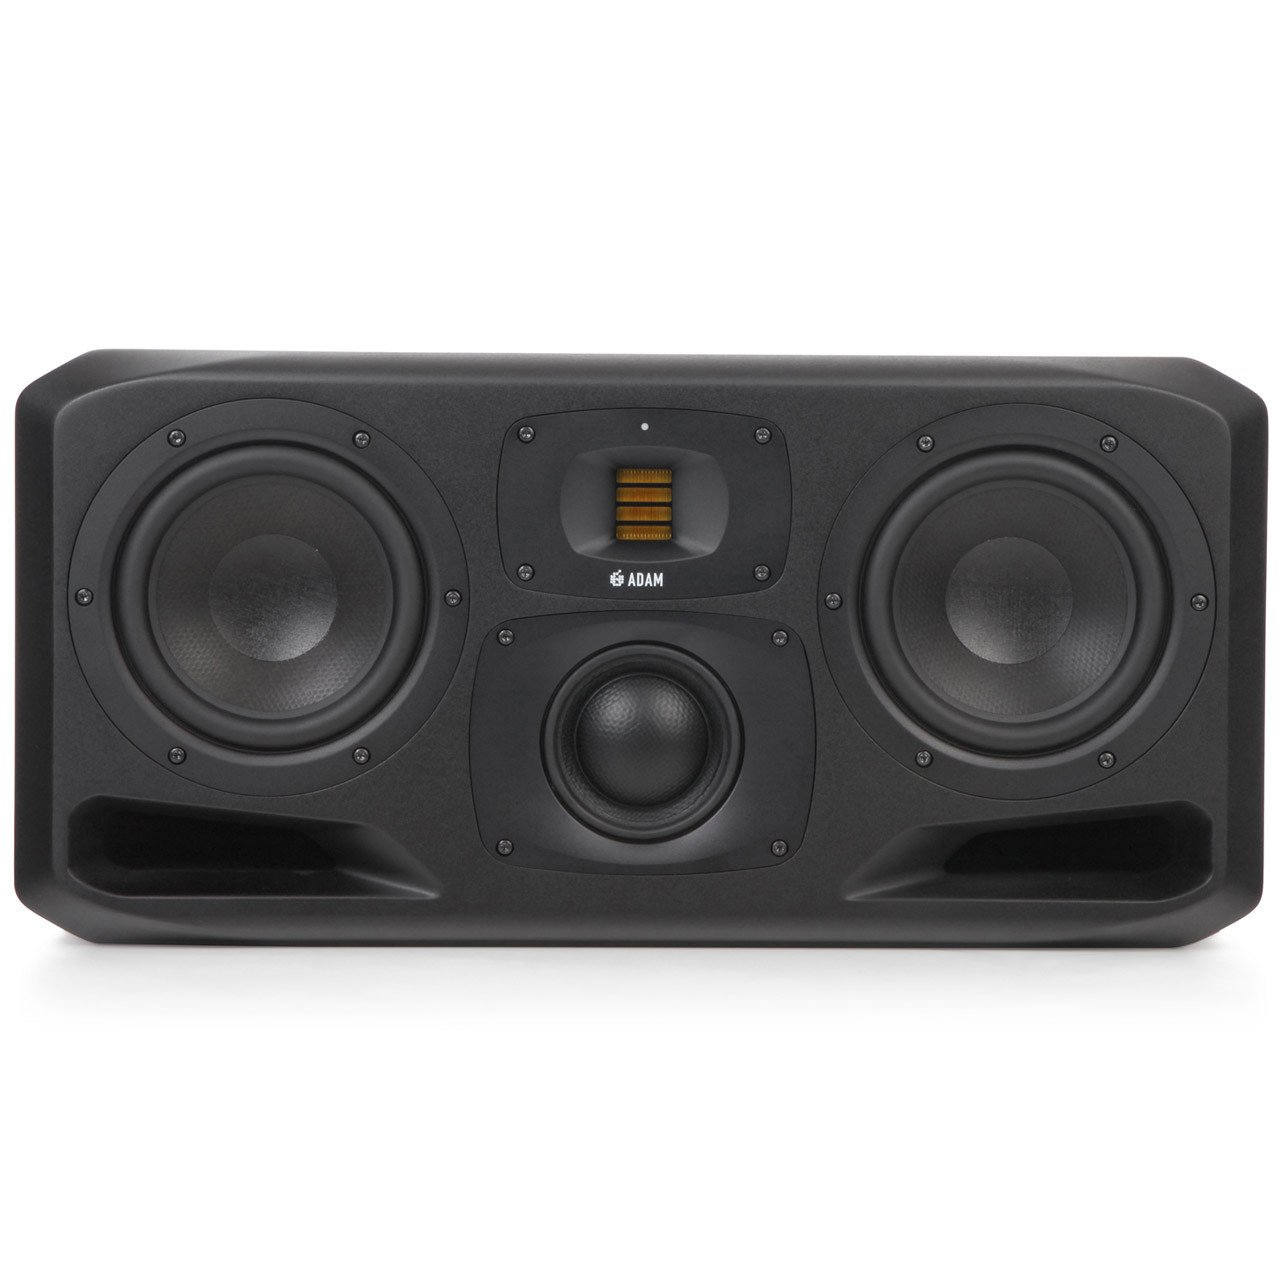 Adam S3H Active Midfield Studio Reference Monitors (Pair)